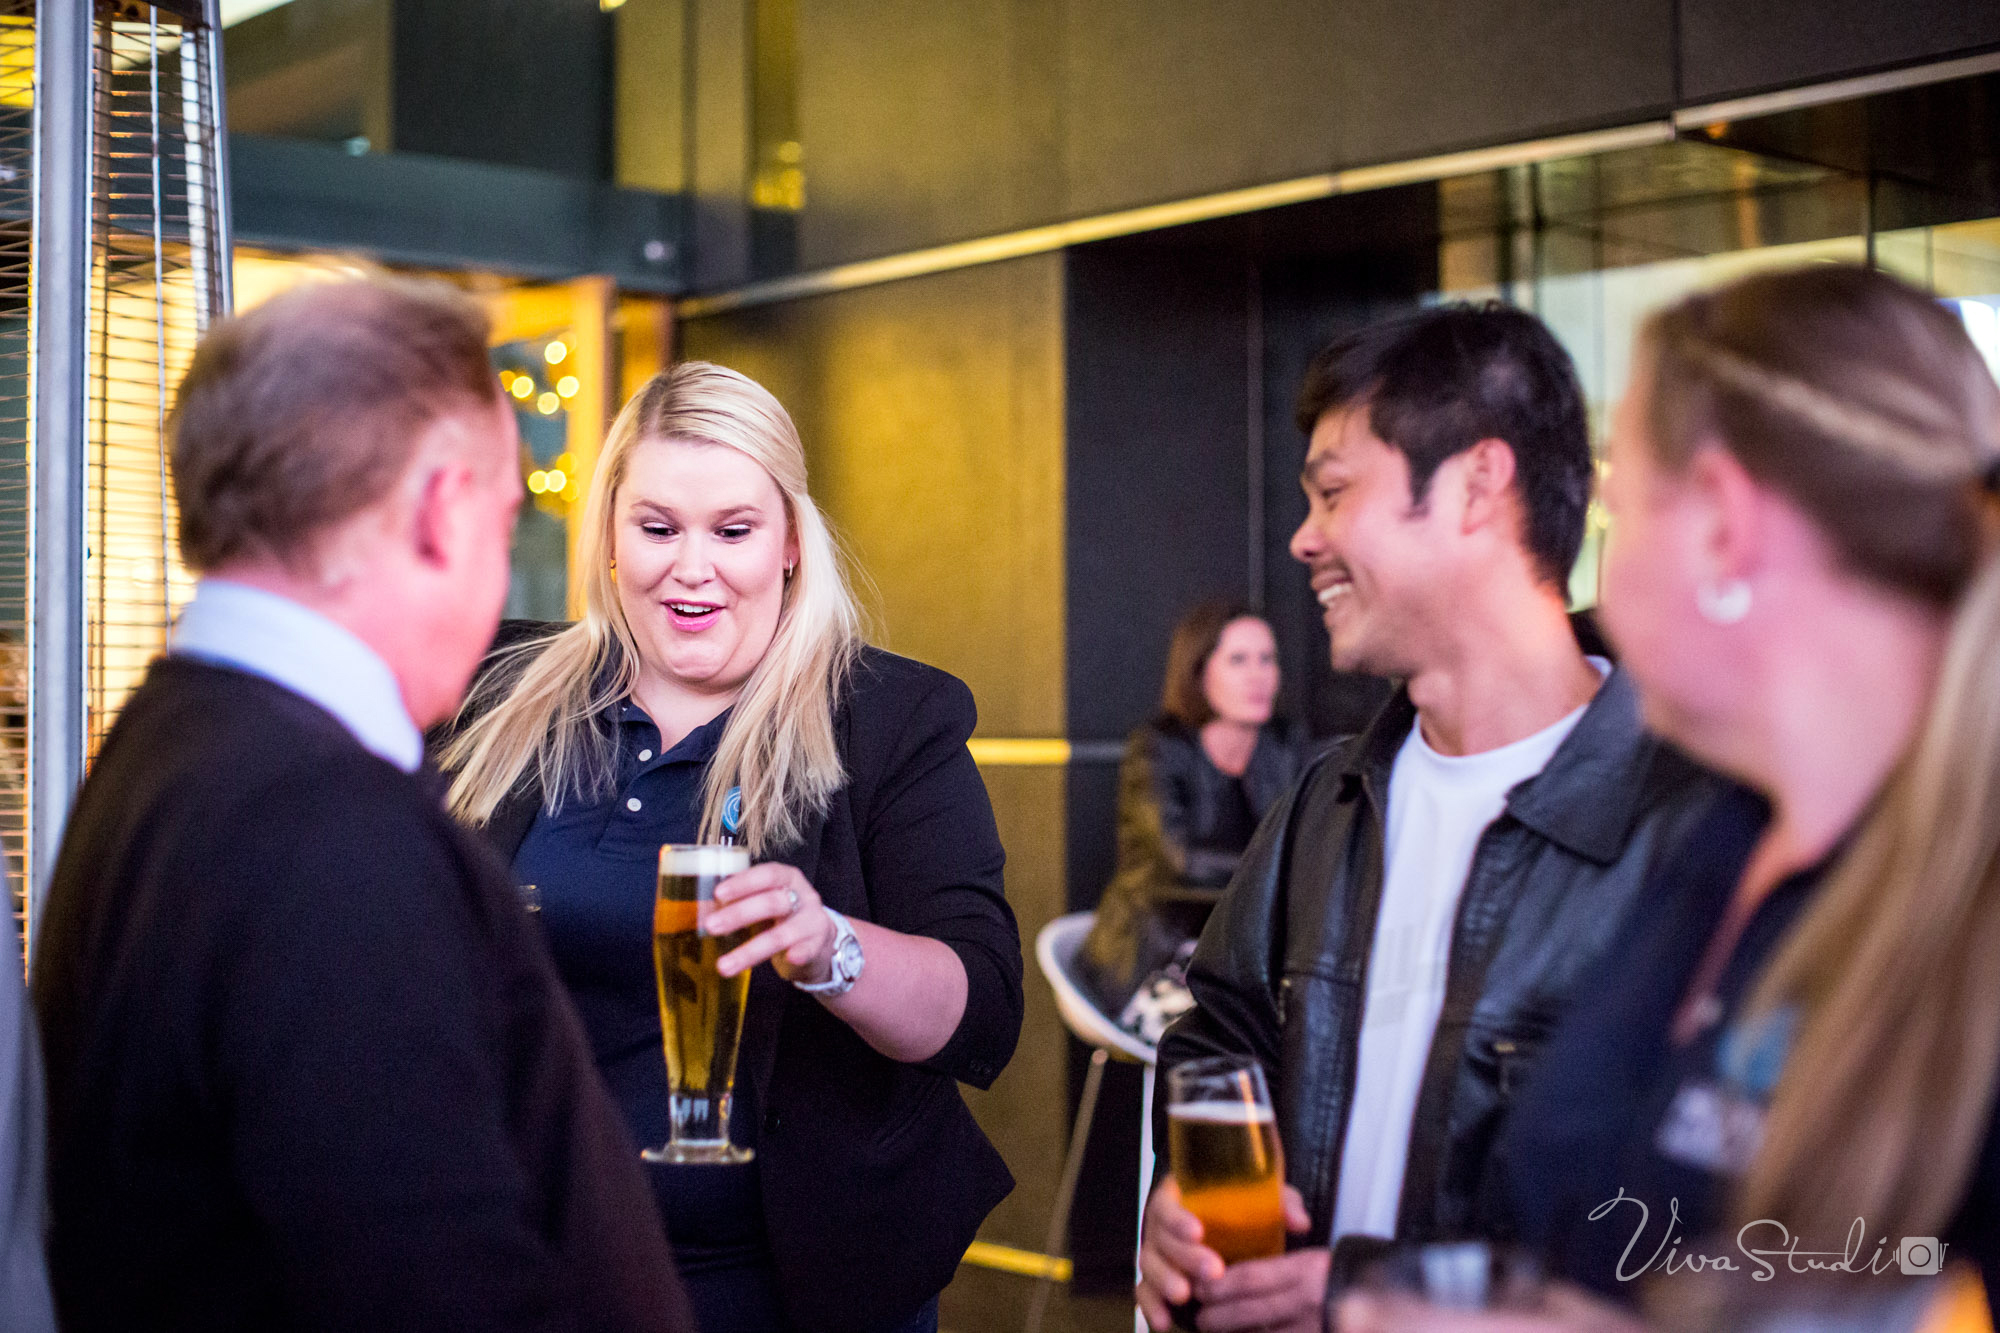 VivaStudio_Hunt_Migration_Functions_Work_Event_Bar_Portrait_Brisbane_013